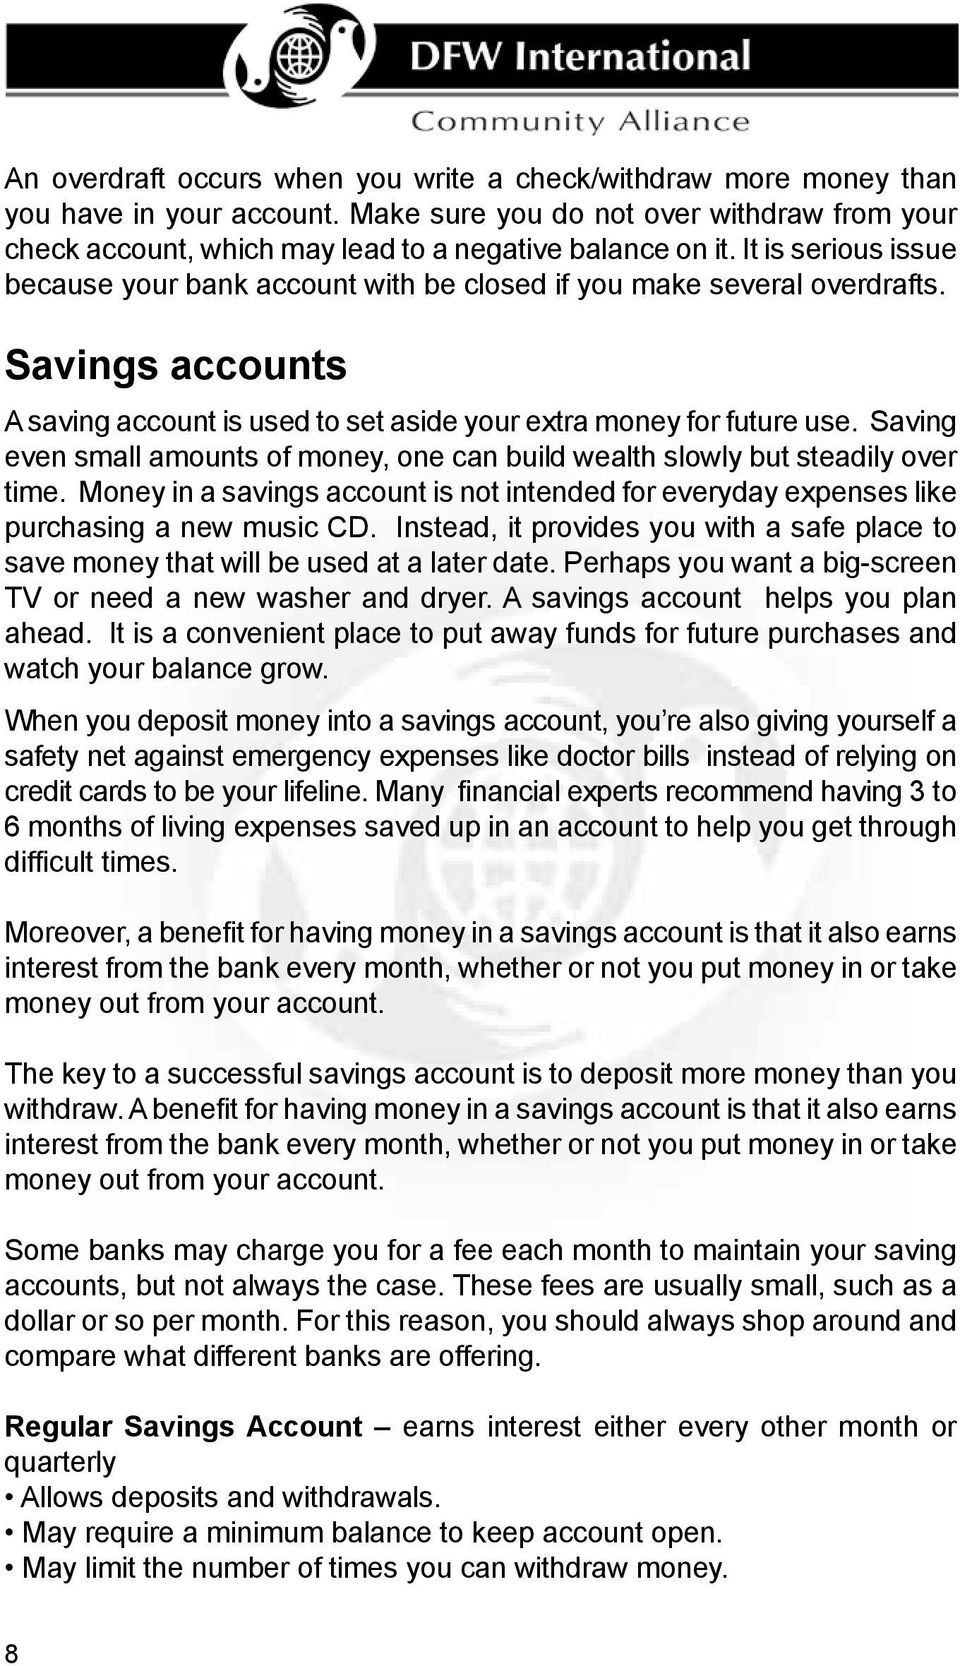 Saving even small amounts of money, one can build wealth slowly but steadily over time. Money in a savings account is not intended for everyday expenses like purchasing a new music CD.